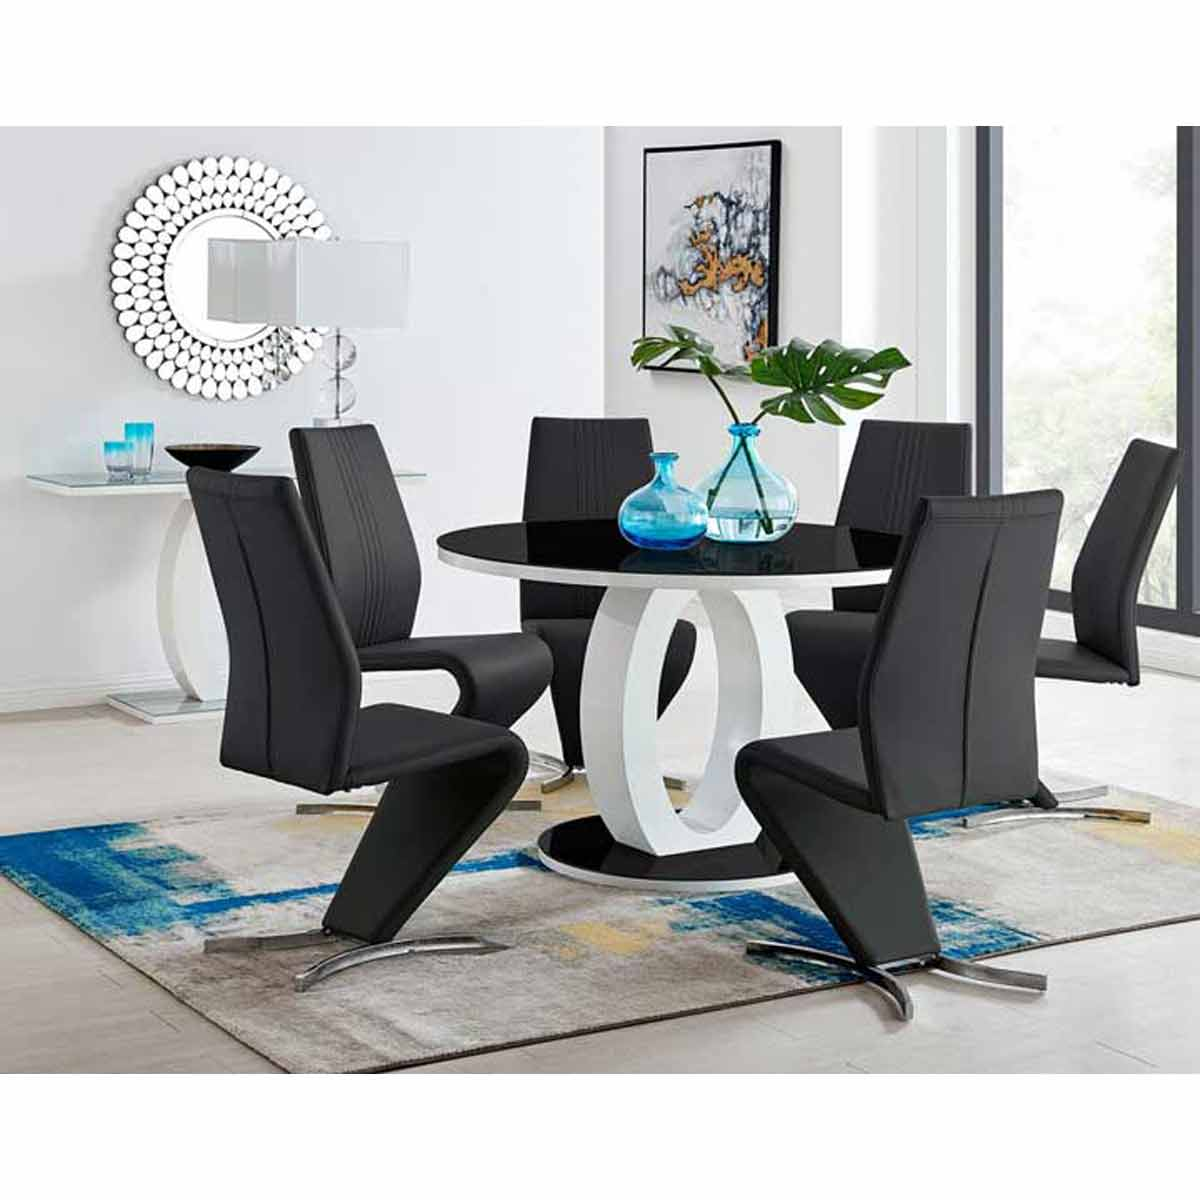 Furniture Box Giovani High Gloss And Glass Large Round Dining Table And 4 Luxury Black Willow Dining Chairs Set